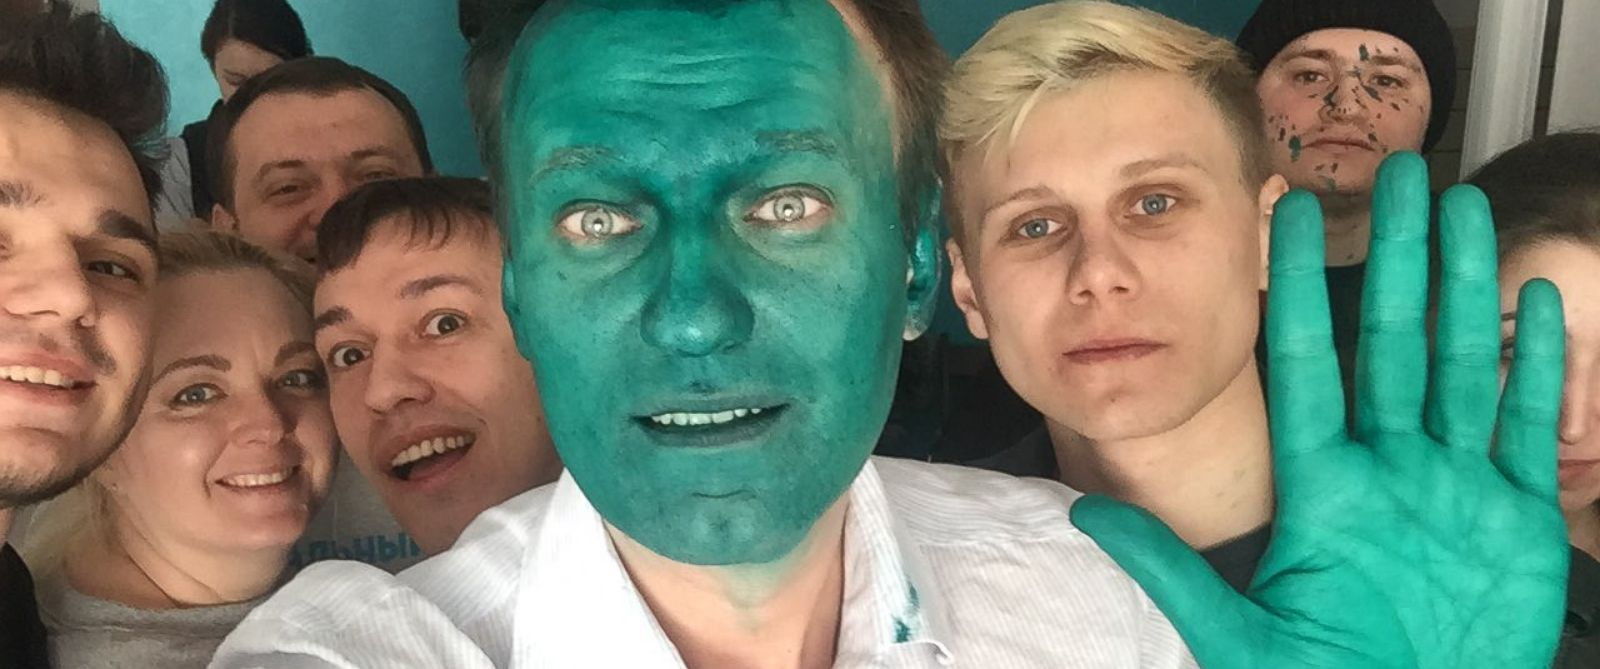 PHOTO: Alexei Navalny posted a photo after being doused with a dye that turned his hands and face green.